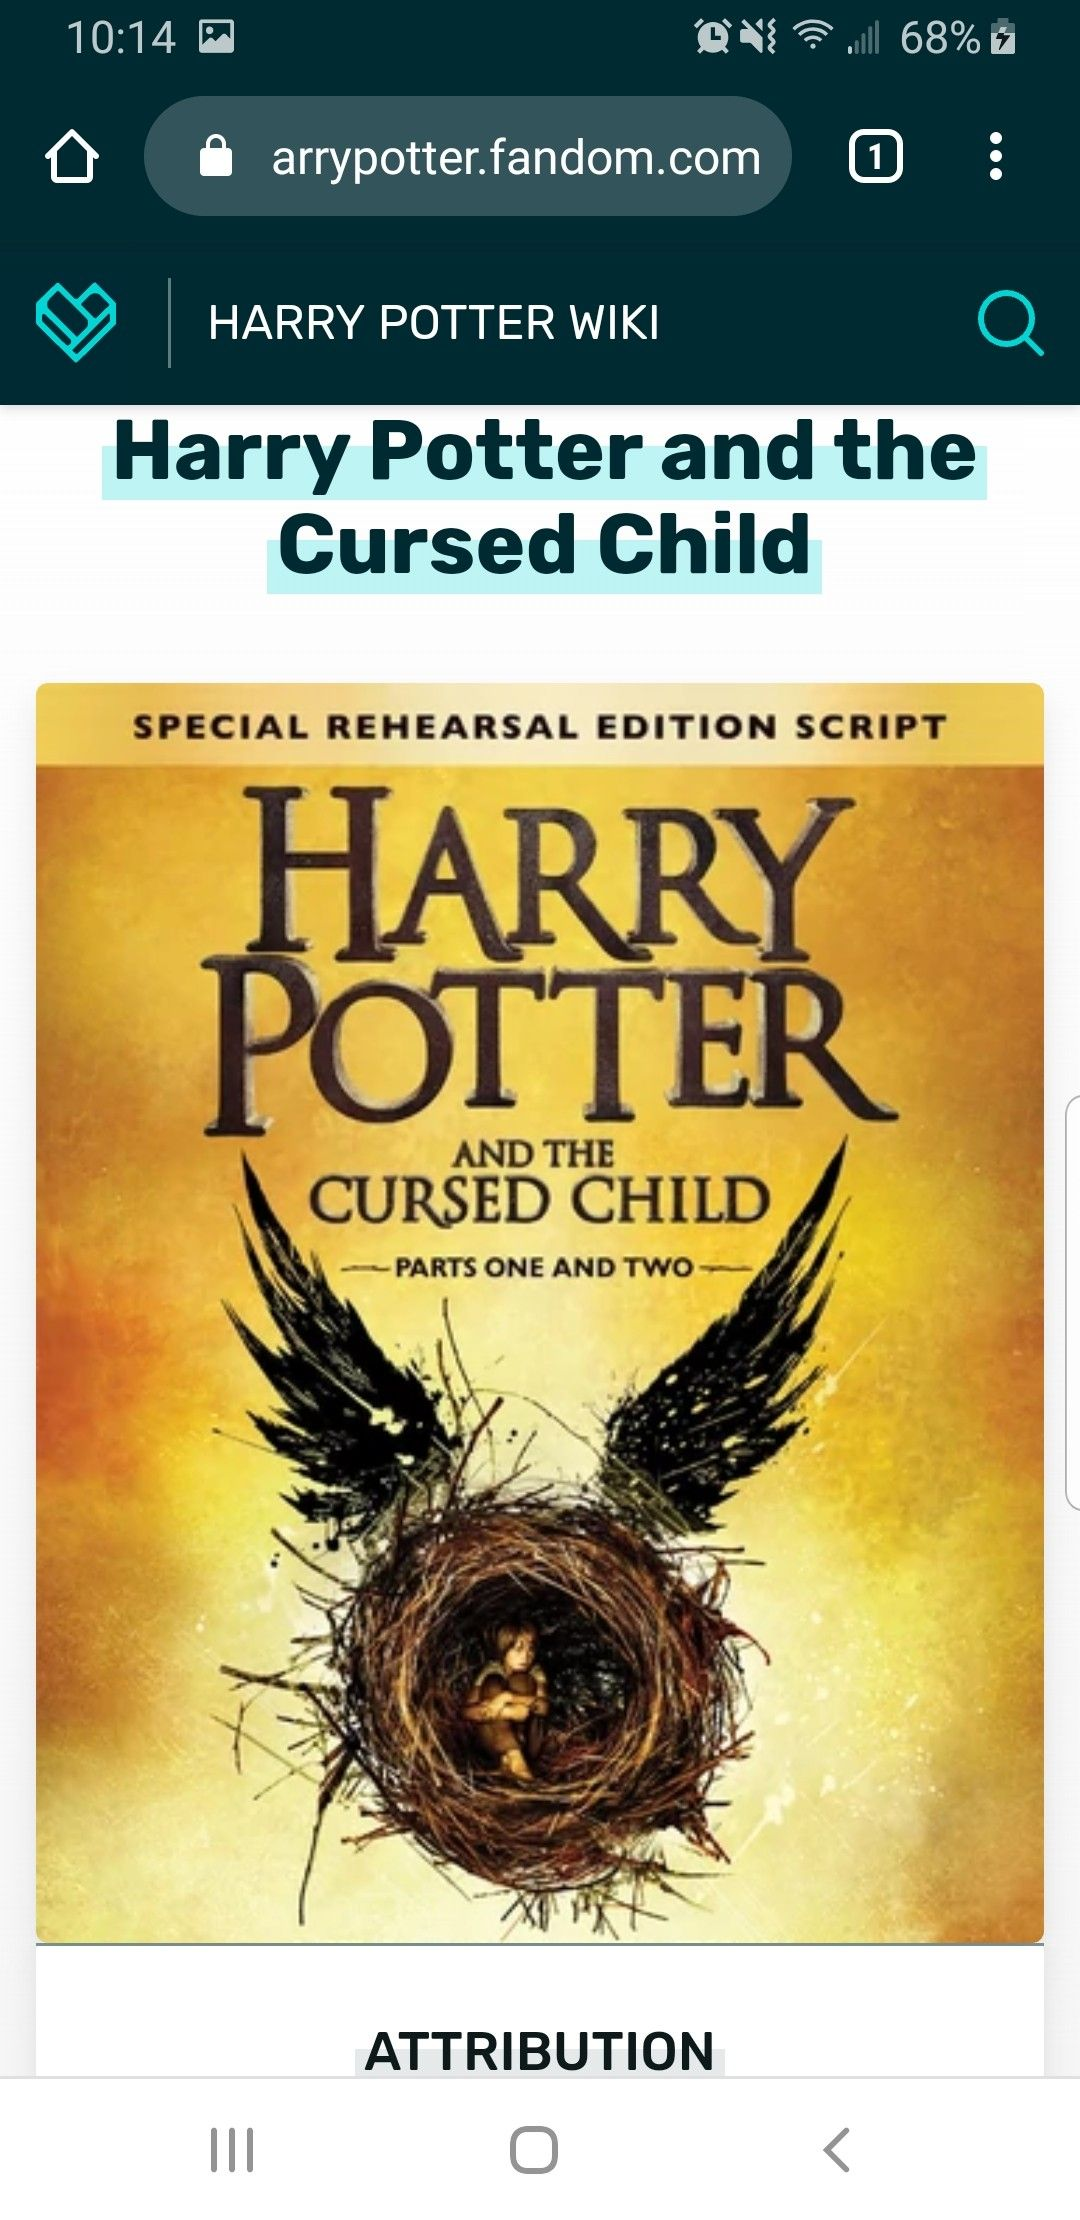 Pin By Taren Devericks On Books And Movies In 2020 Cursed Child Book Harry Potter Wiki Children Book Cover